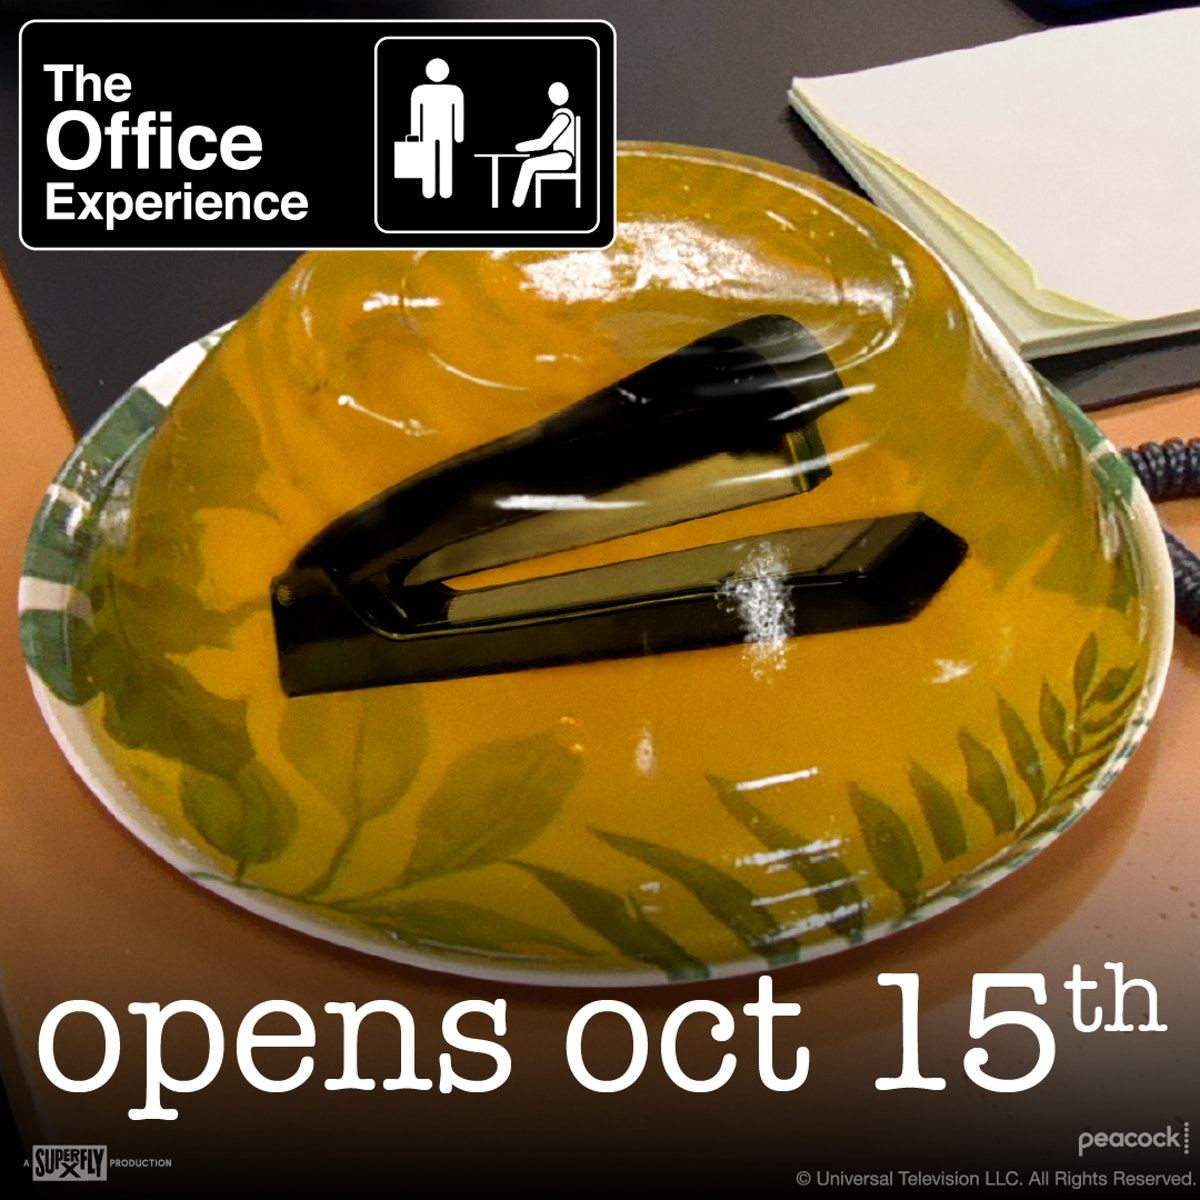 'The Office' Experience is coming to Chicago on Oct. 15.